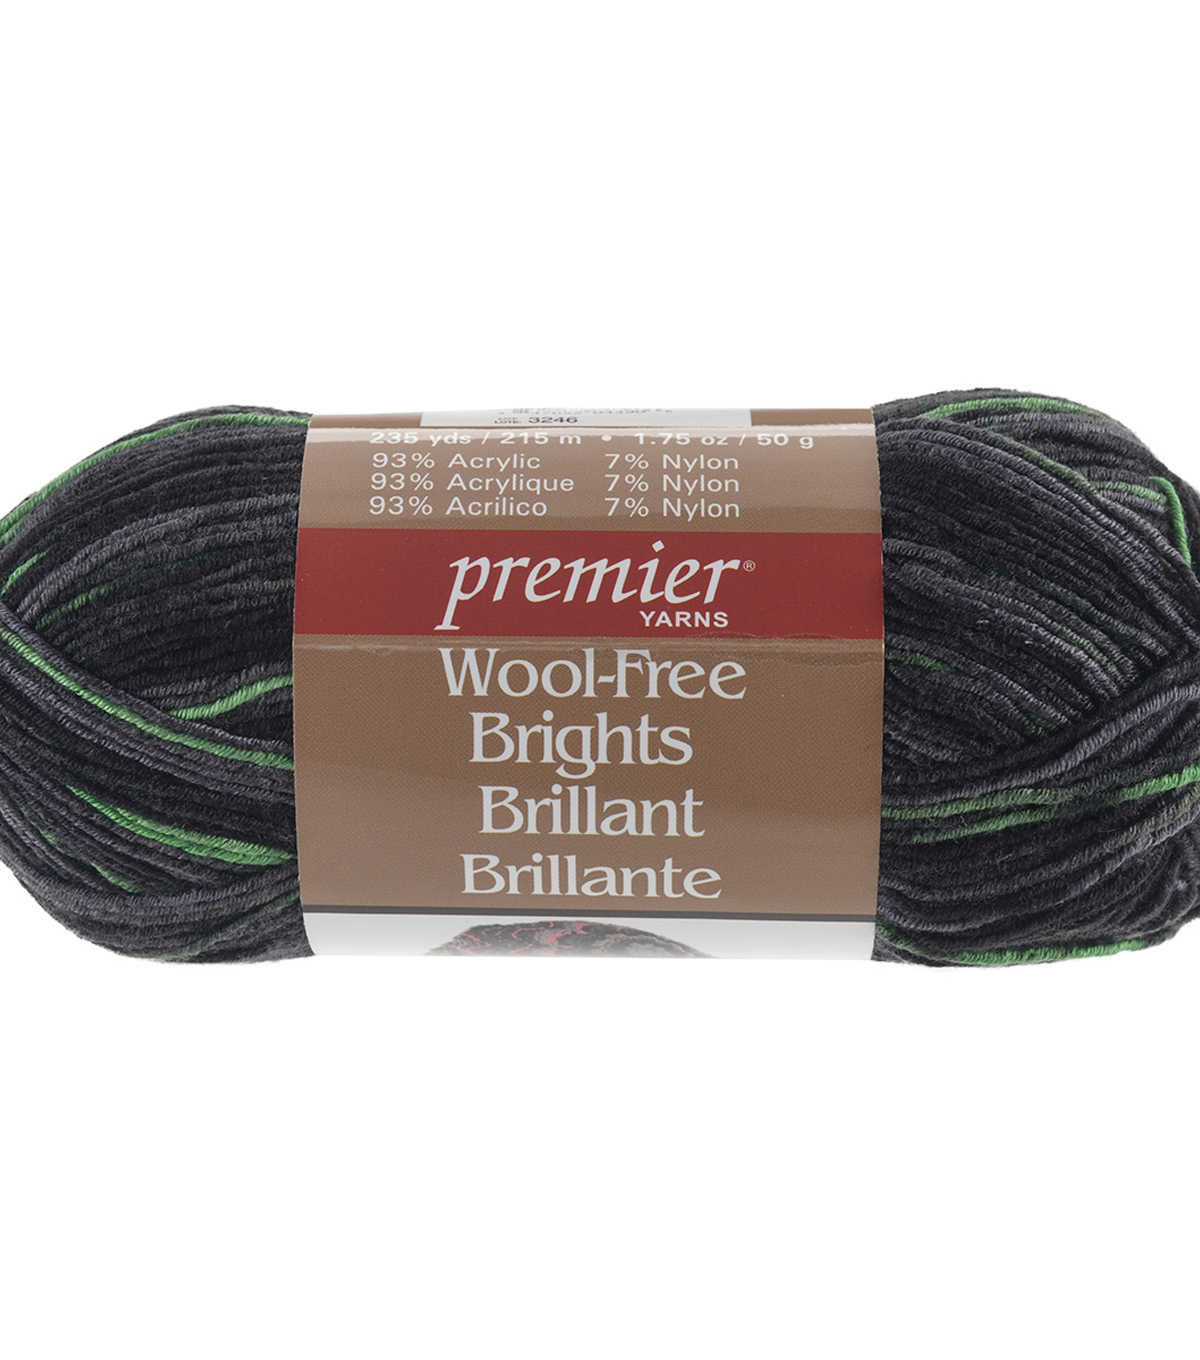 Premier® Yarns Wool Free Brights Yarn